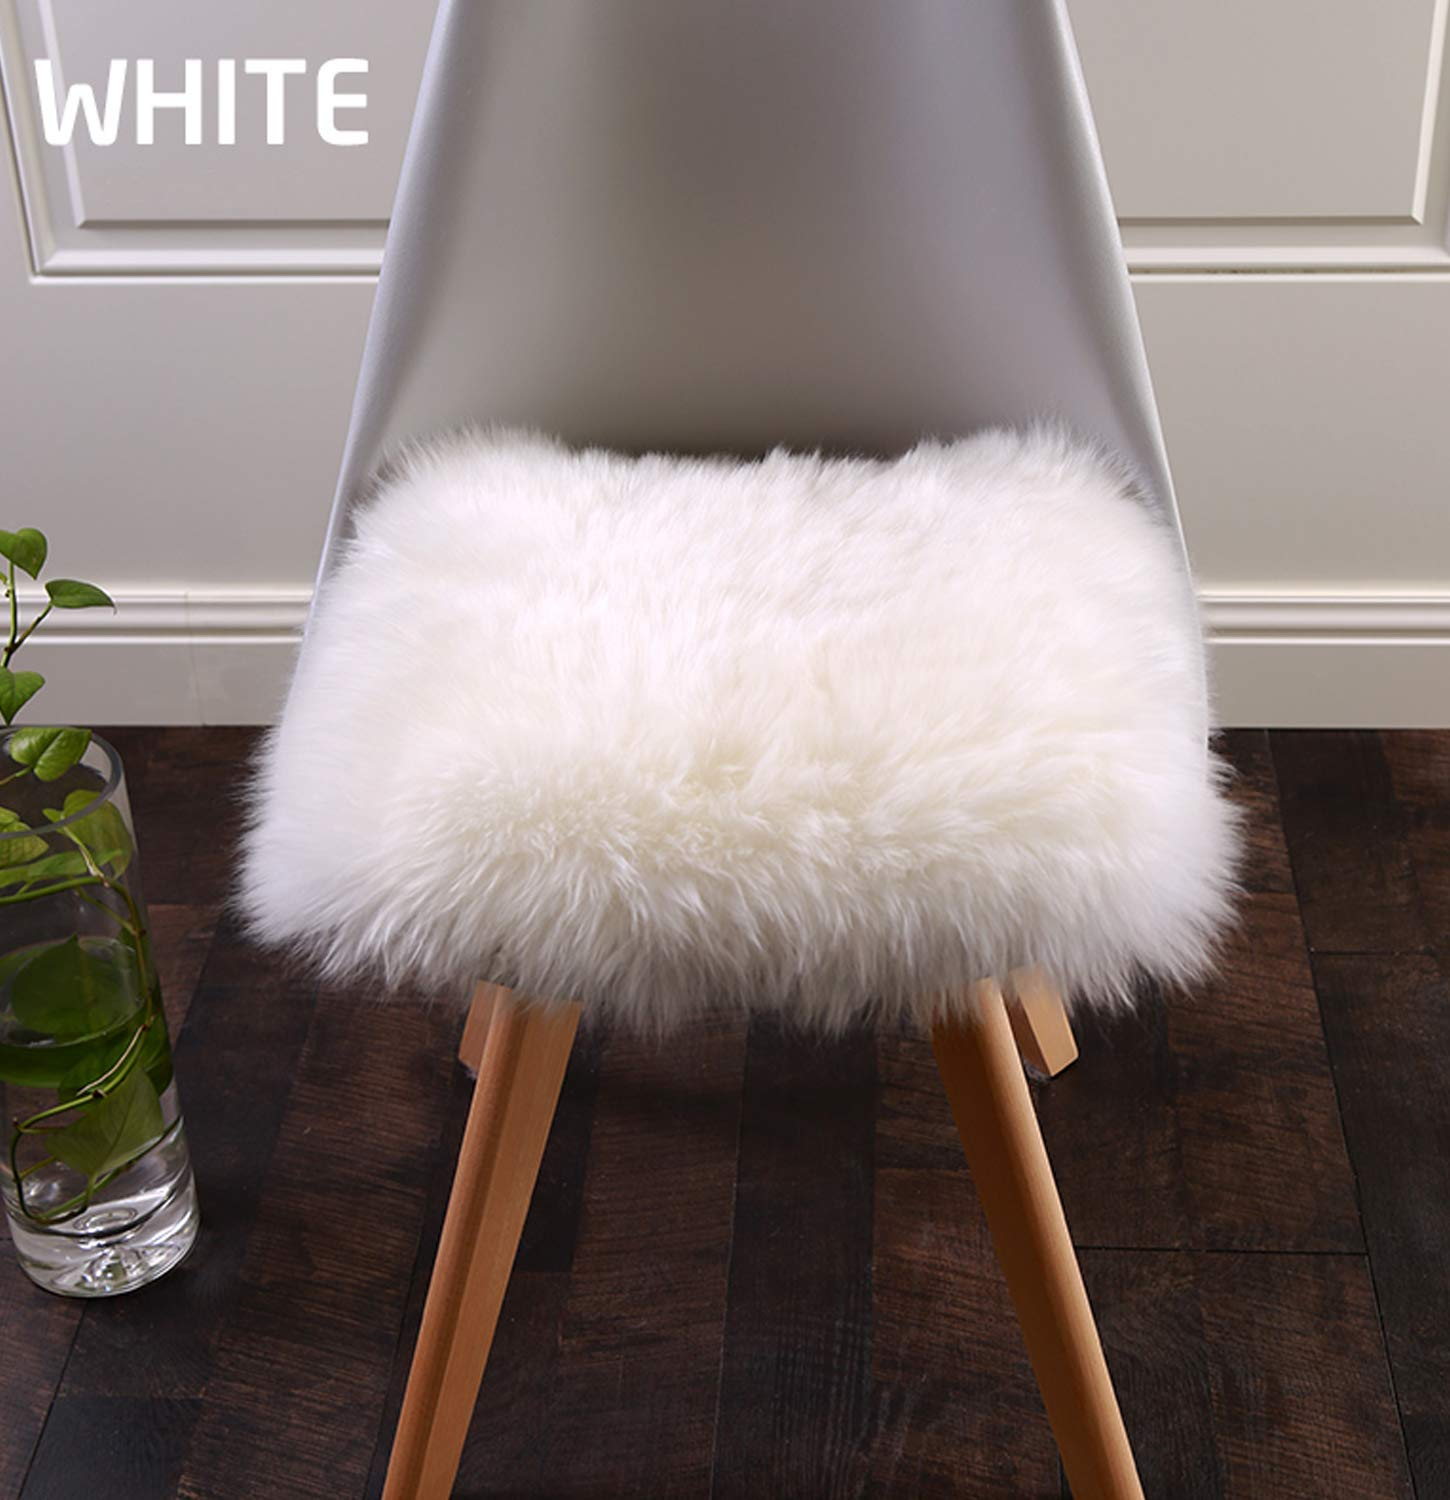 Super Soft Faux Fur Sheepskin Rugs Soft Plush seat Cover Pads for Chair Living /& Bedroom Sofa Brown,18x18 Inch